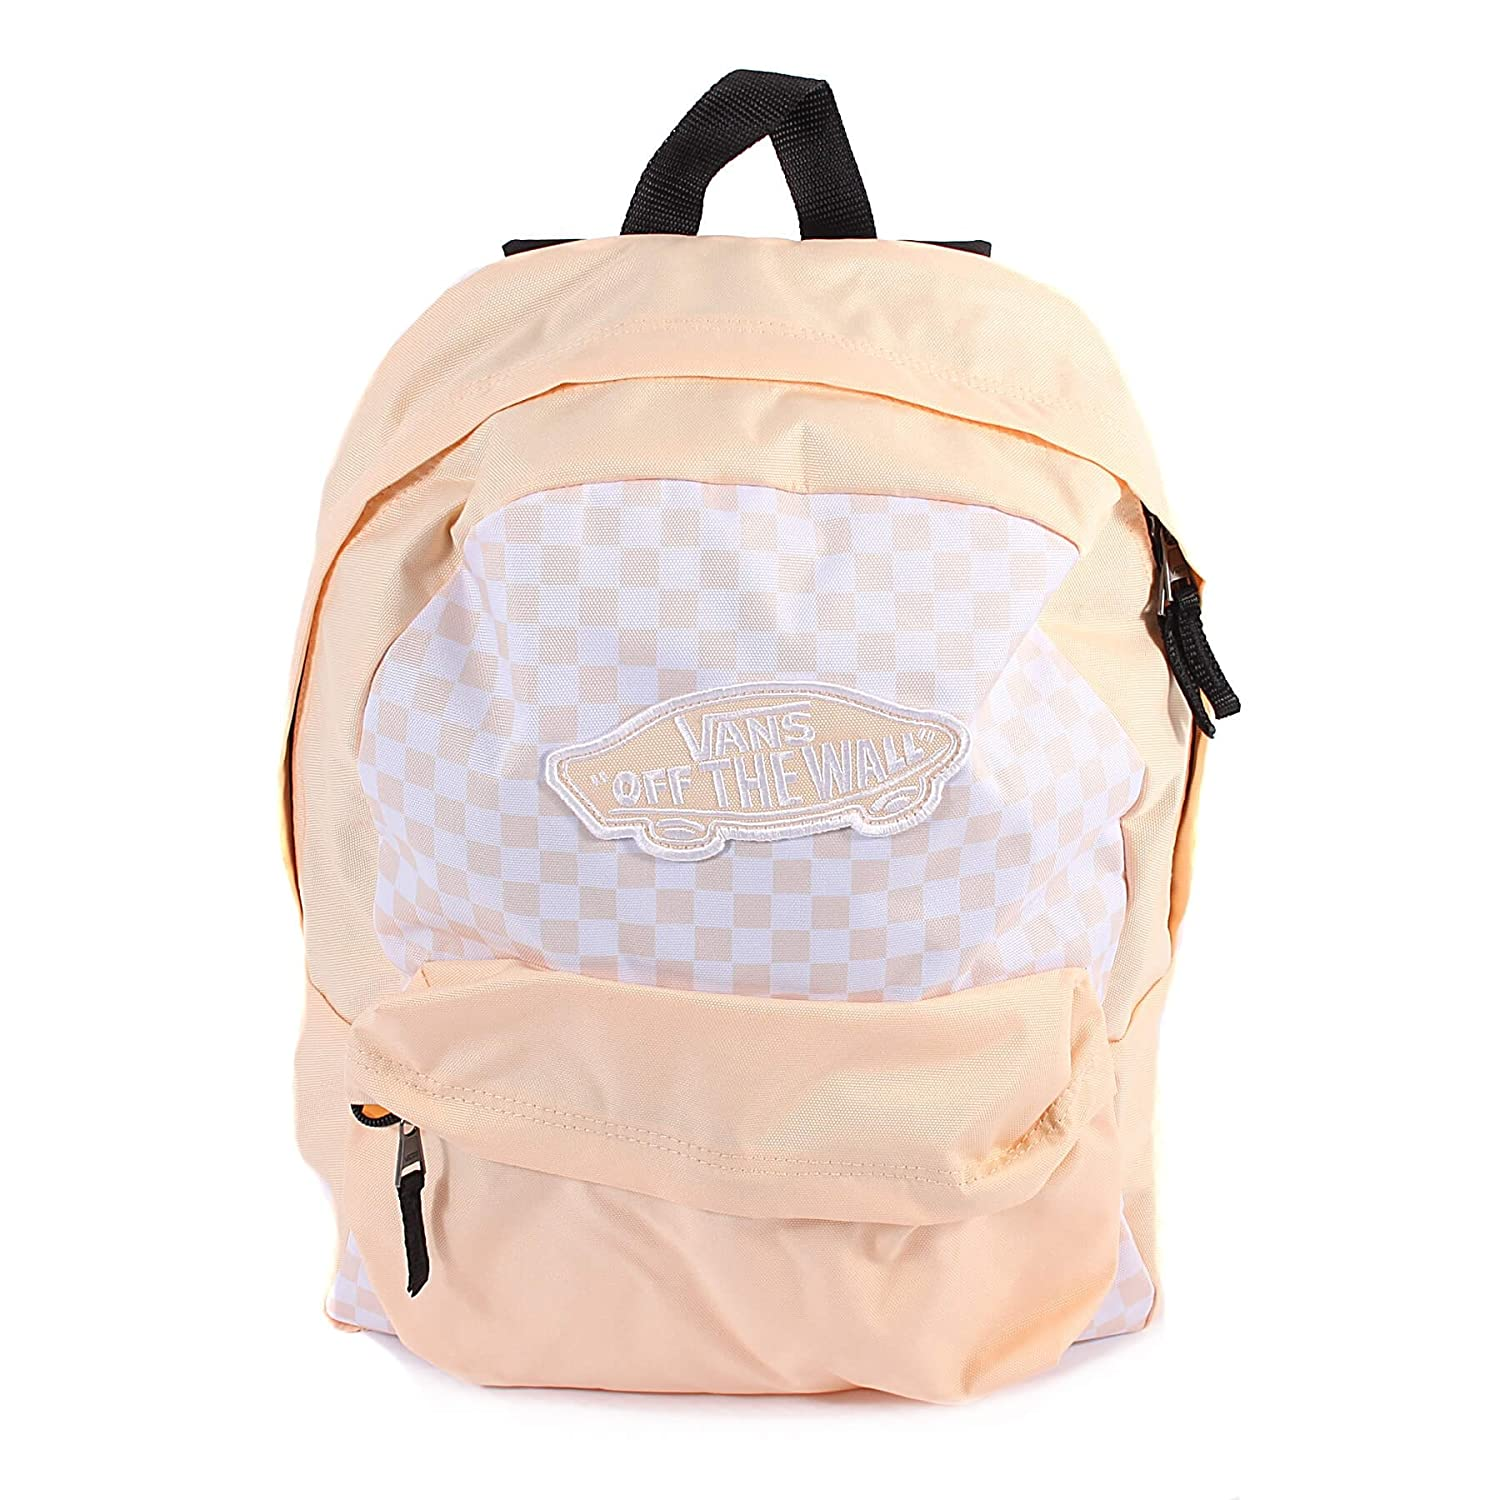 Vans Unisex Realm Polyester Backpack Bleached Apricot Checkerboard-Apricot-O/S Size O/S: Amazon.es: Zapatos y complementos